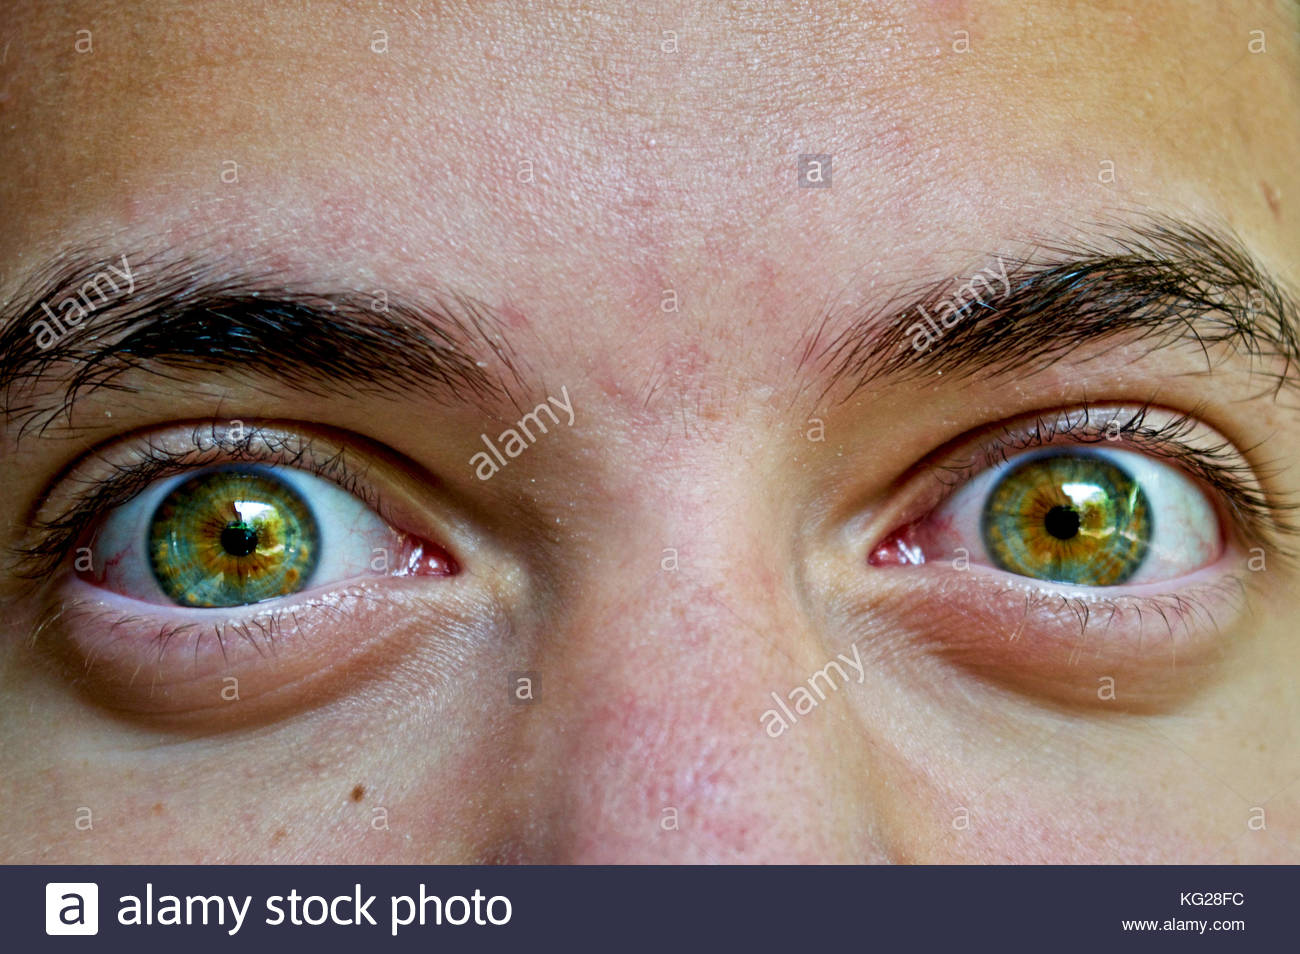 Mr. Twisted Eyeballs. - Stock Image